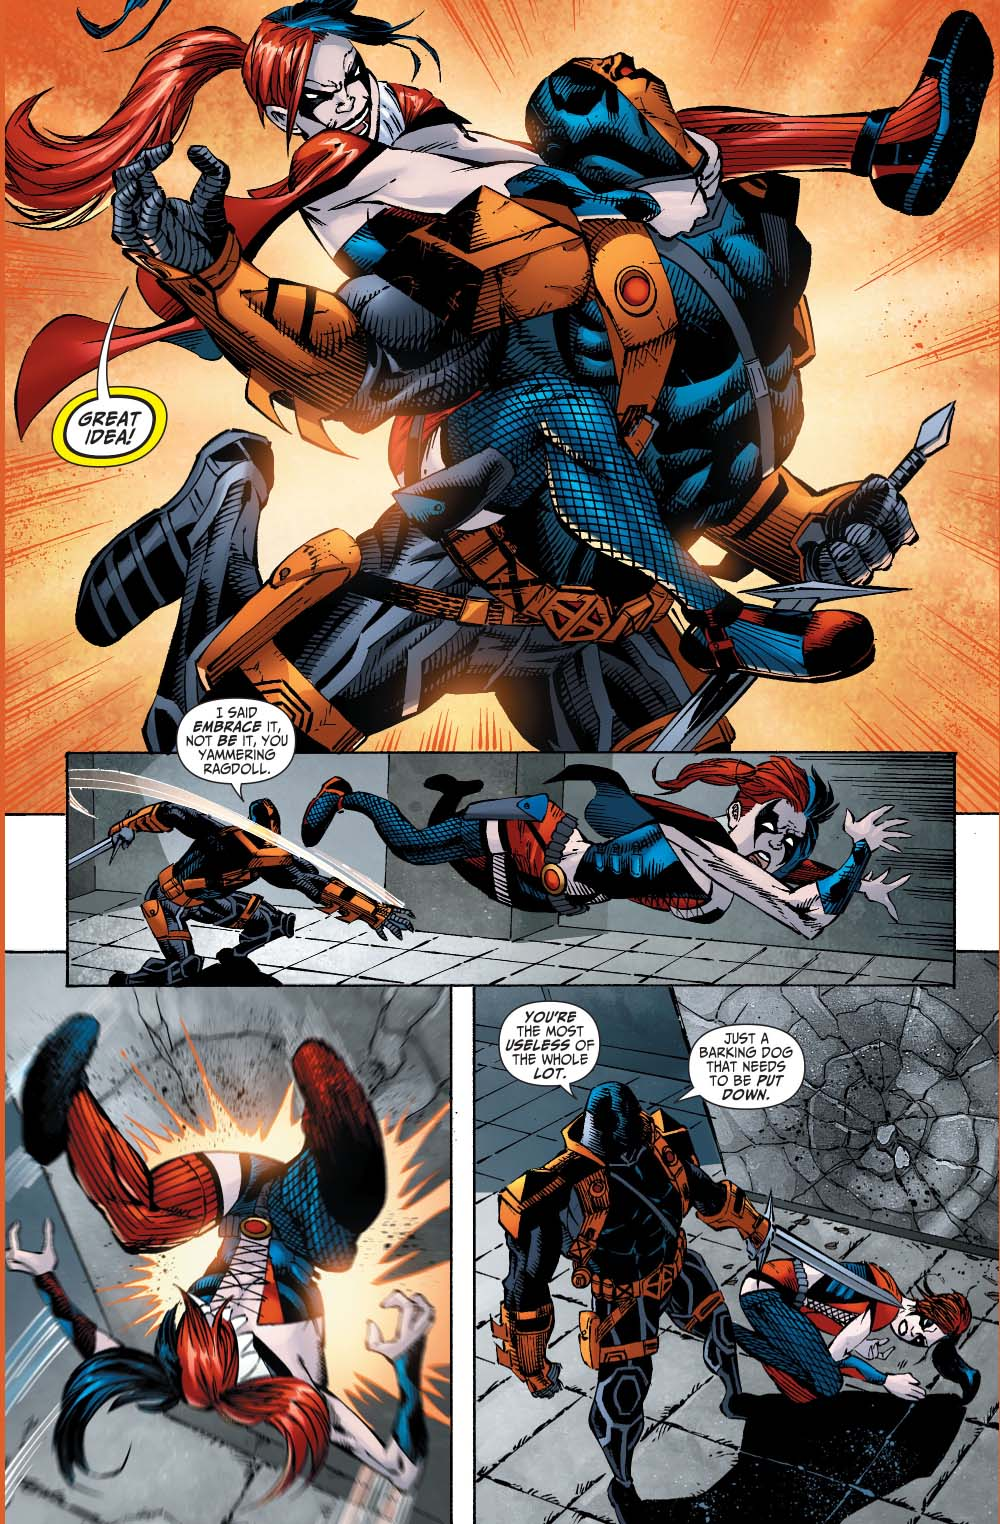 black manta and harley quinn vs deathstroke 4